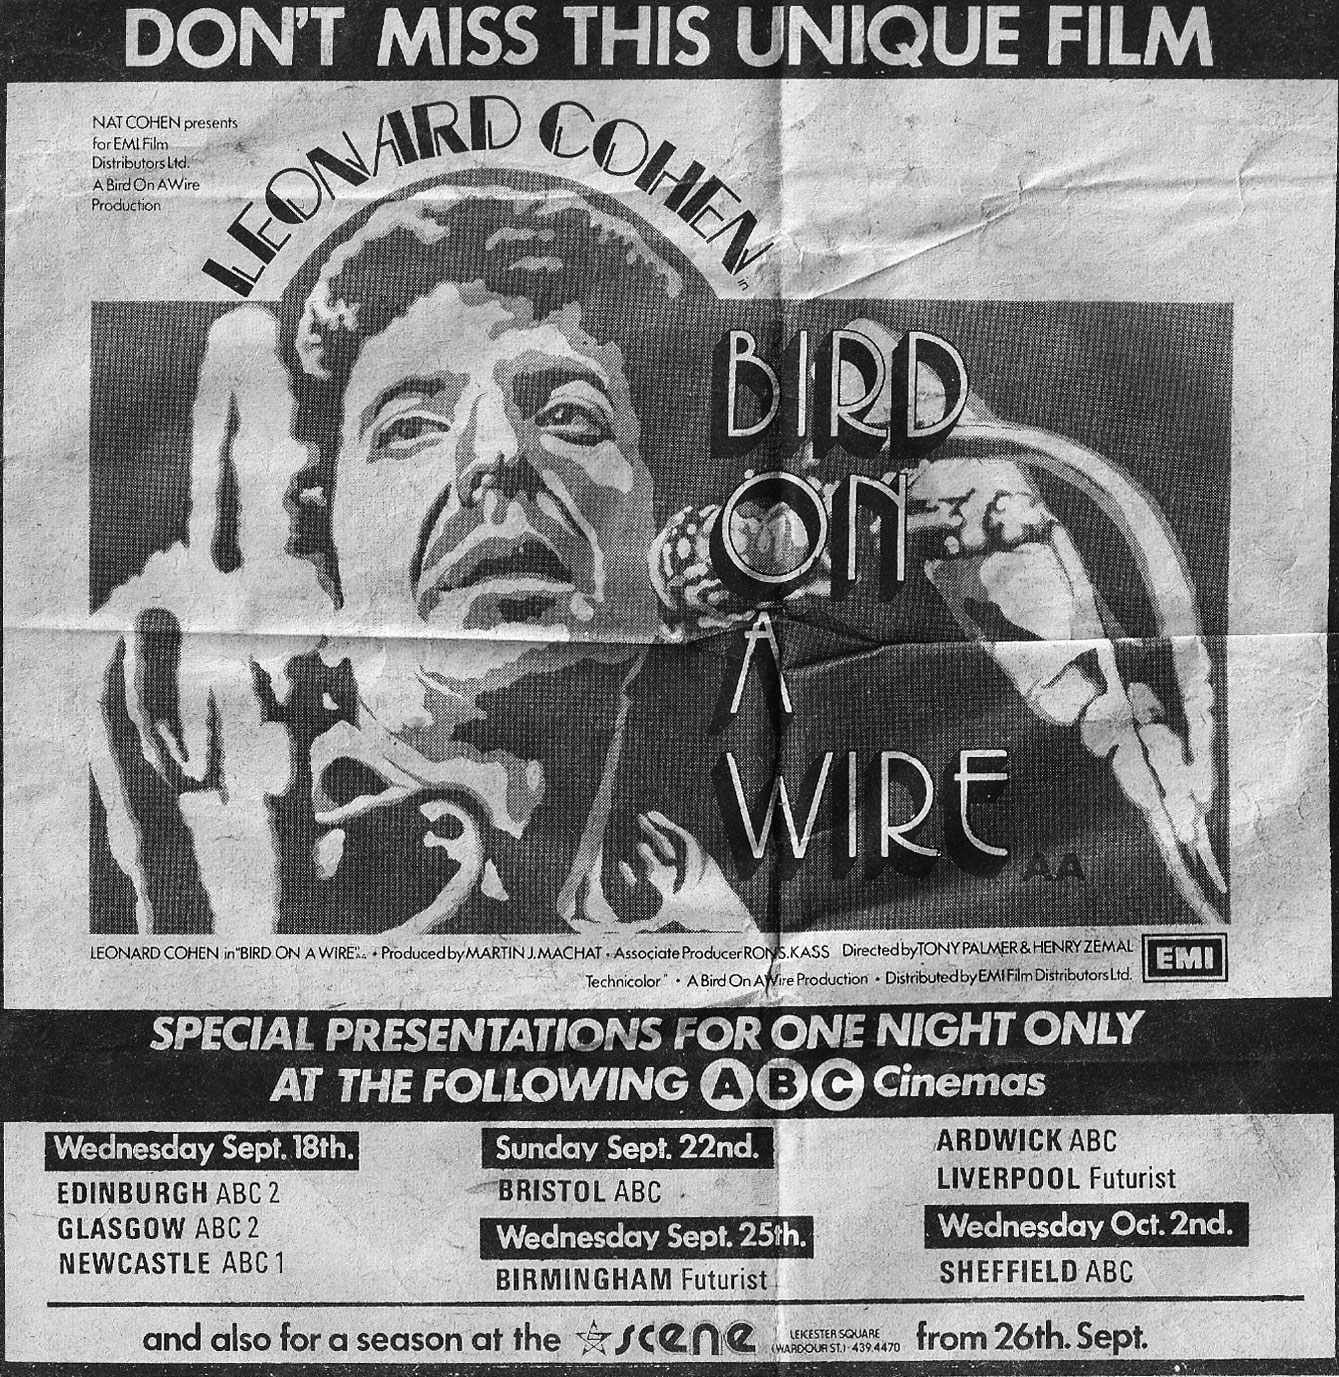 Signs Of Leonard Cohen: Newspaper Ad For The Original 1974 Release ...